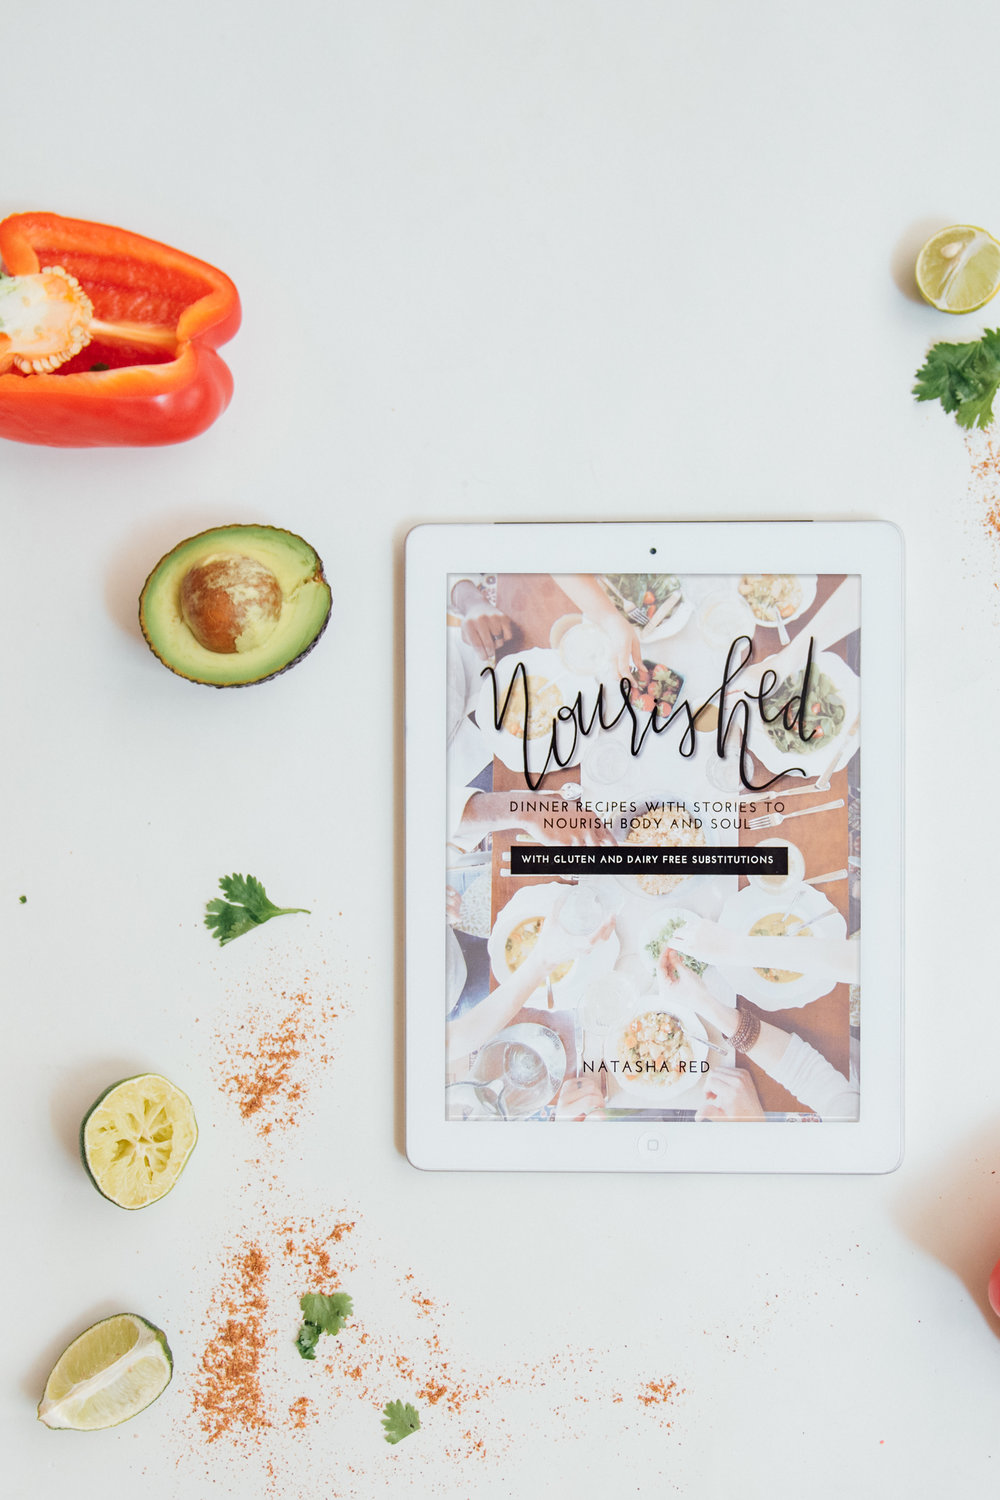 Nourished Cookbook by Natasha Red